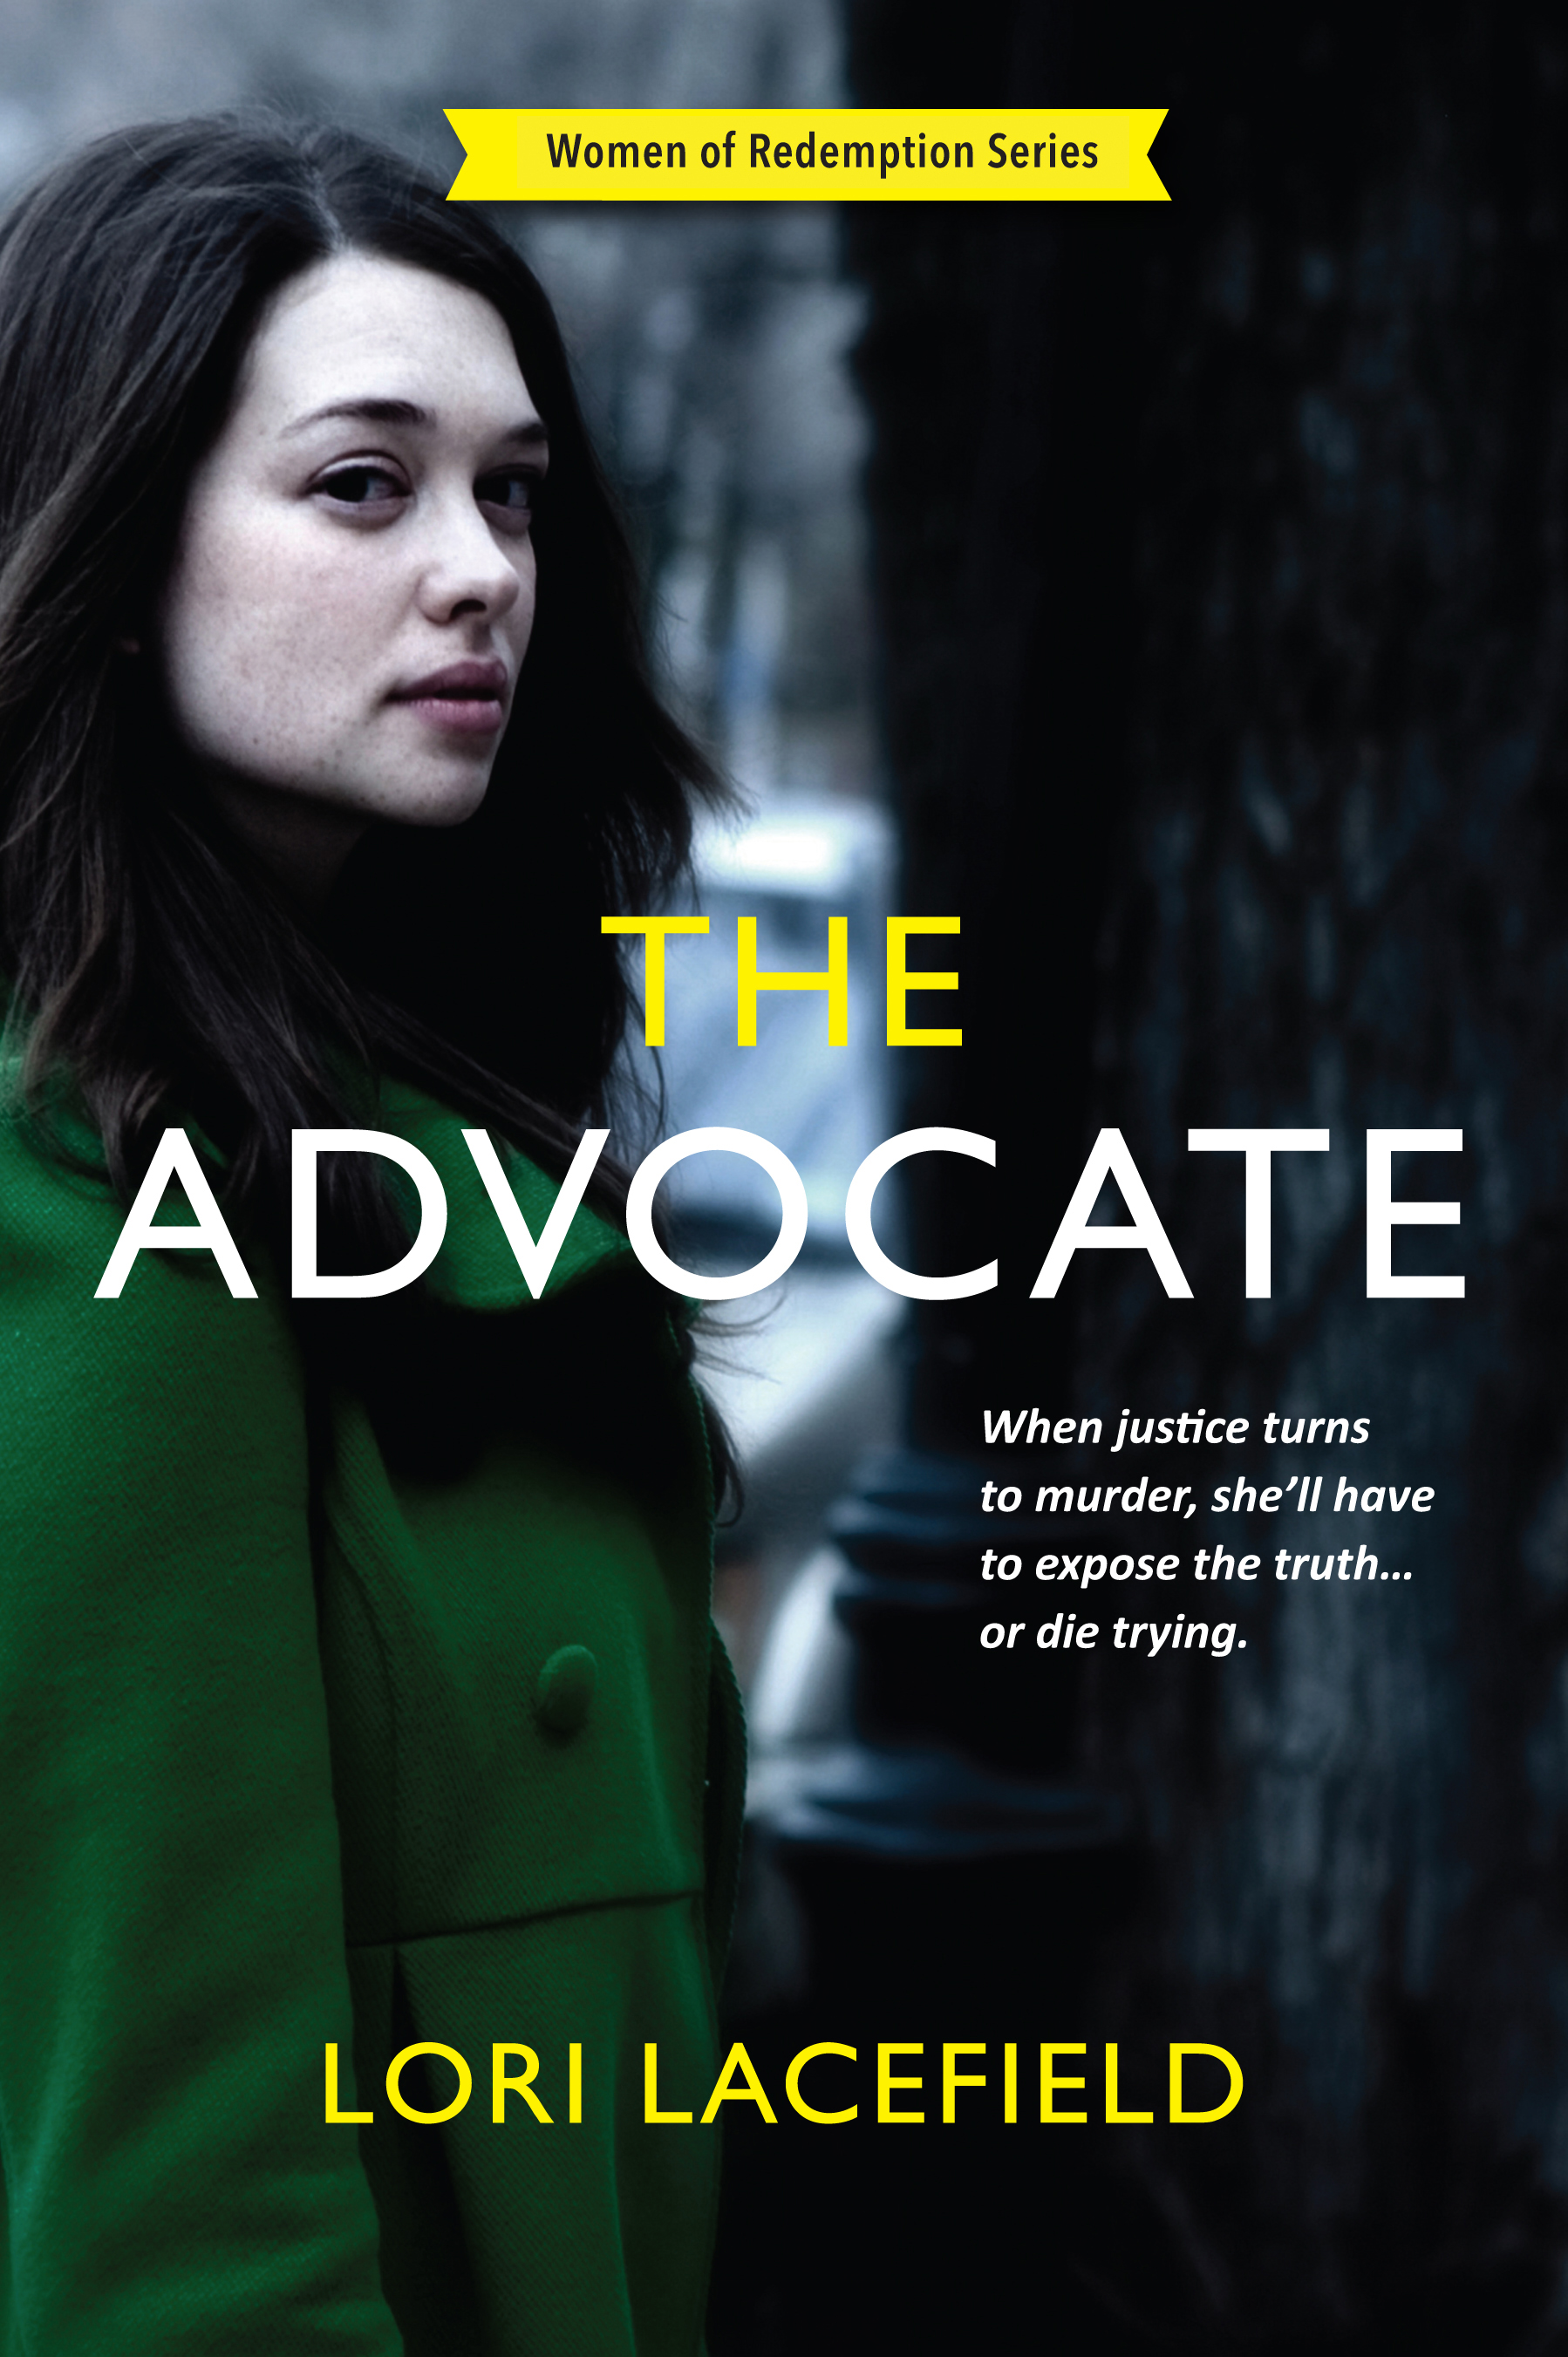 The Front Cover of The Advocate Book.